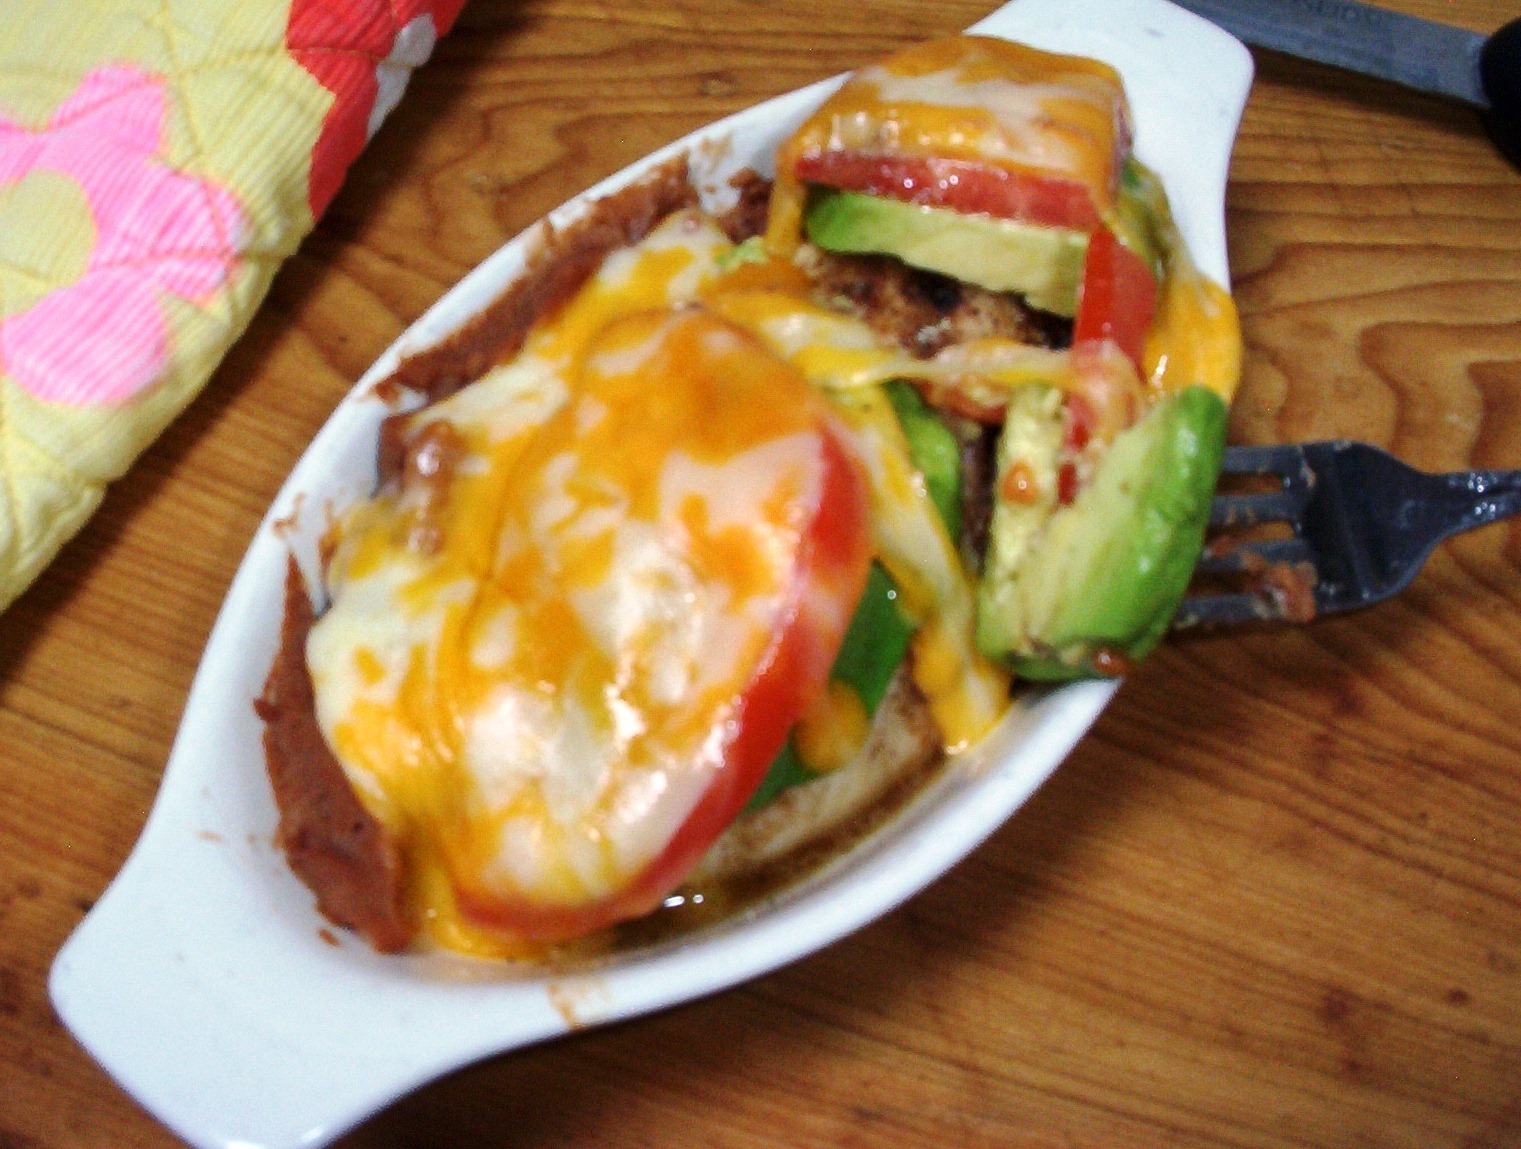 Avocado, Tomato and Cheese-Topped Chicken, Gluten-Free